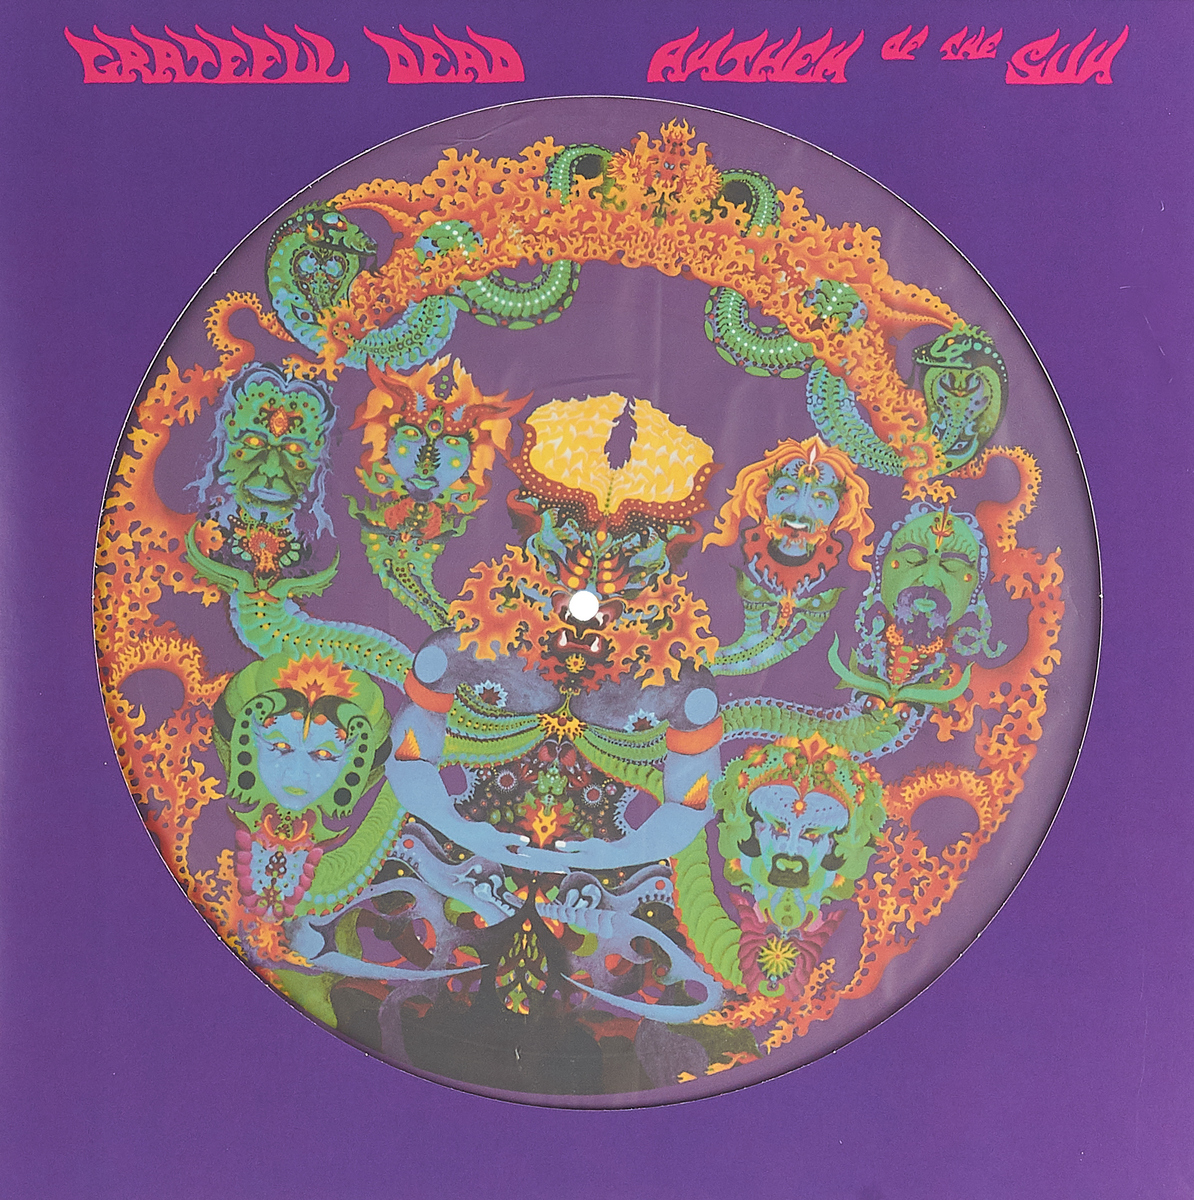 The Grateful Dead Grateful Dead. Anthem Of The Sun (50th Anniversary Edition) (Picture Disc) (LP) синтезатор best toys синтезатор